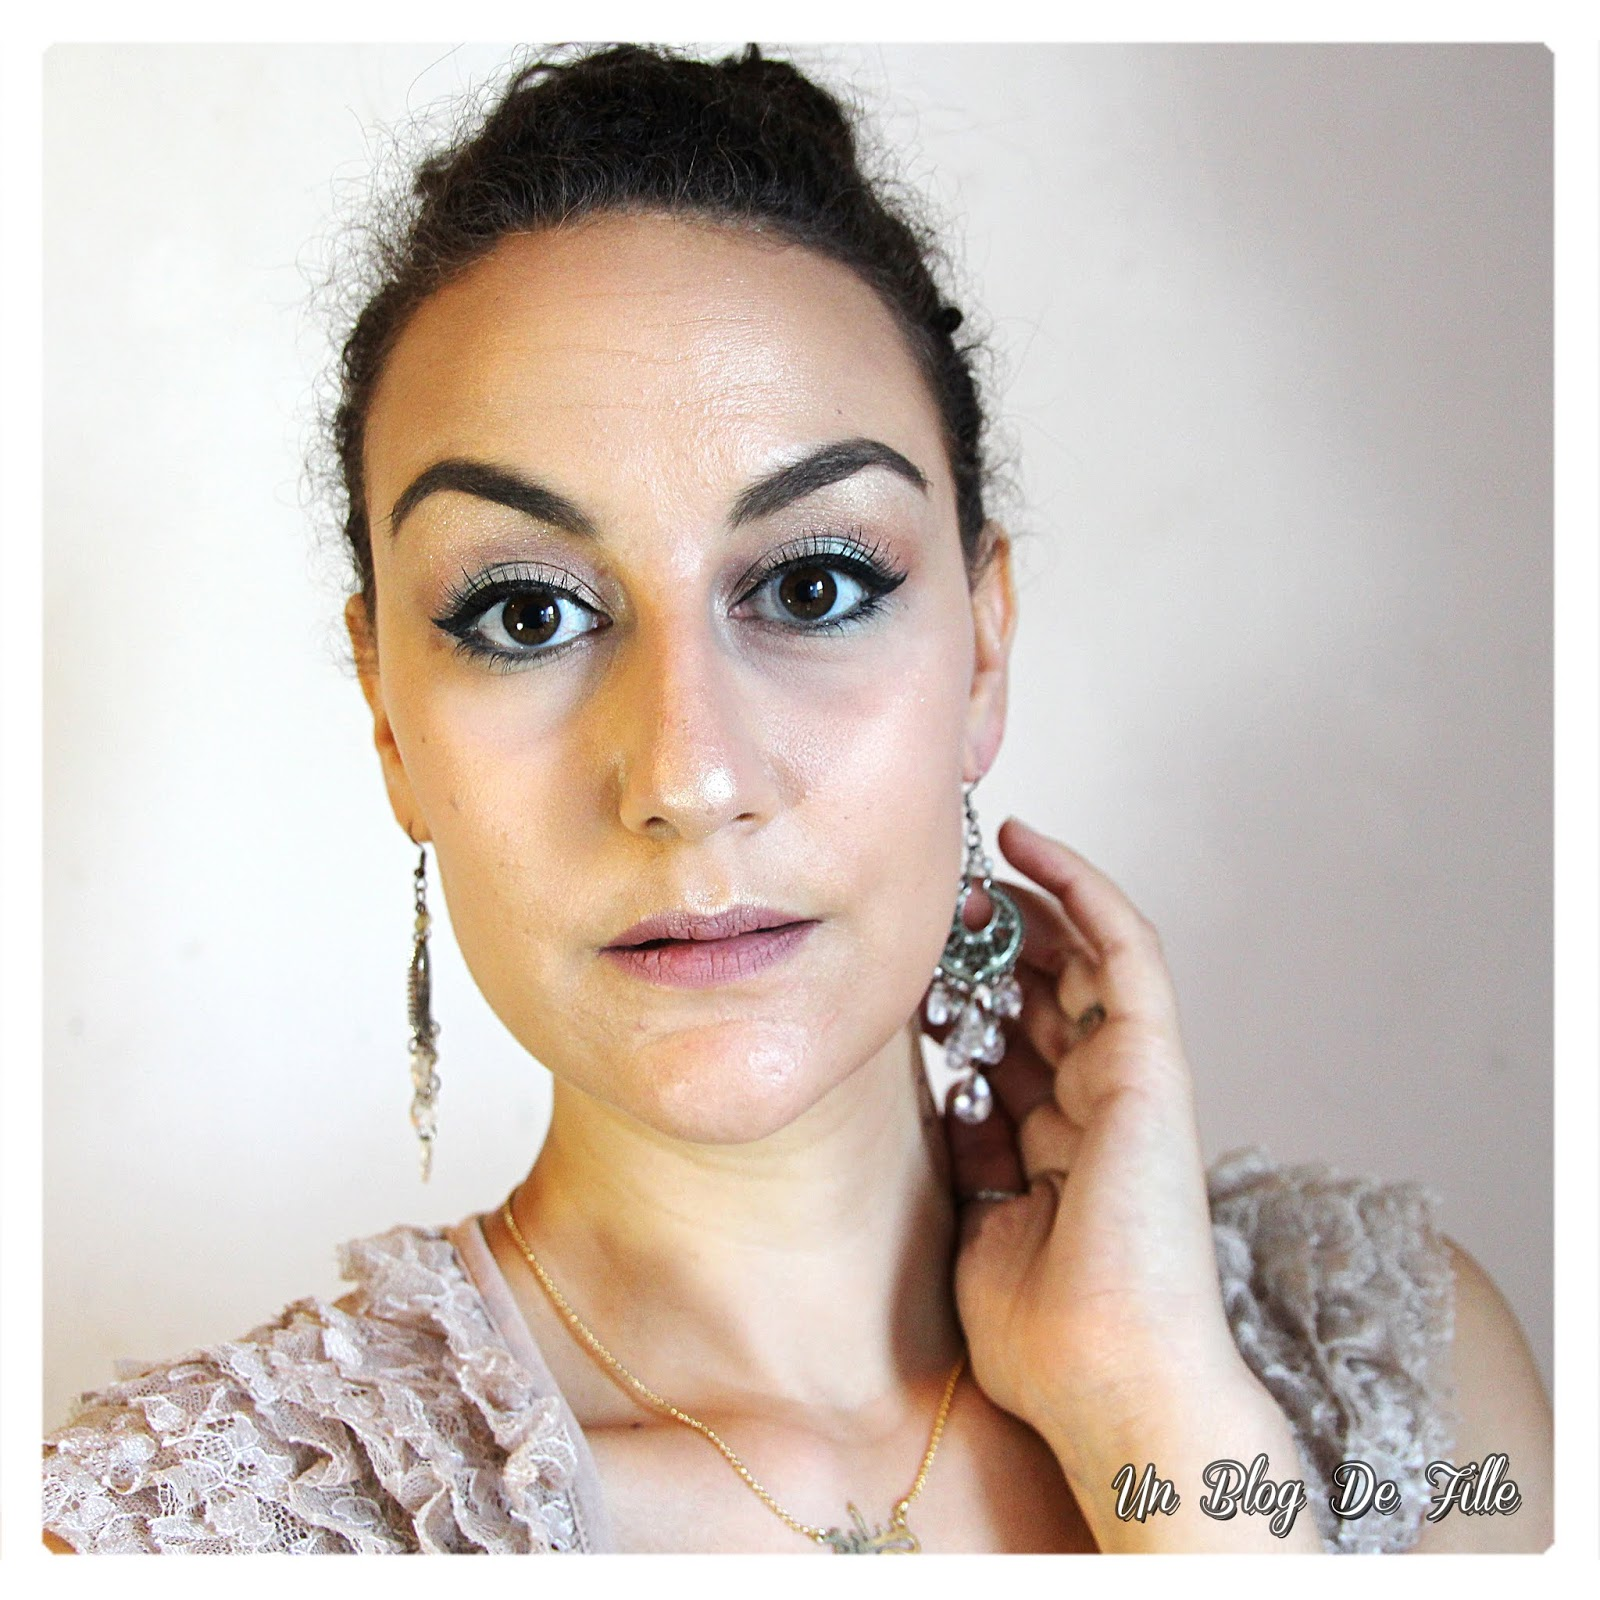 https://unblogdefille.blogspot.com/2018/05/maquillage-champagne-et-mint-msc.html